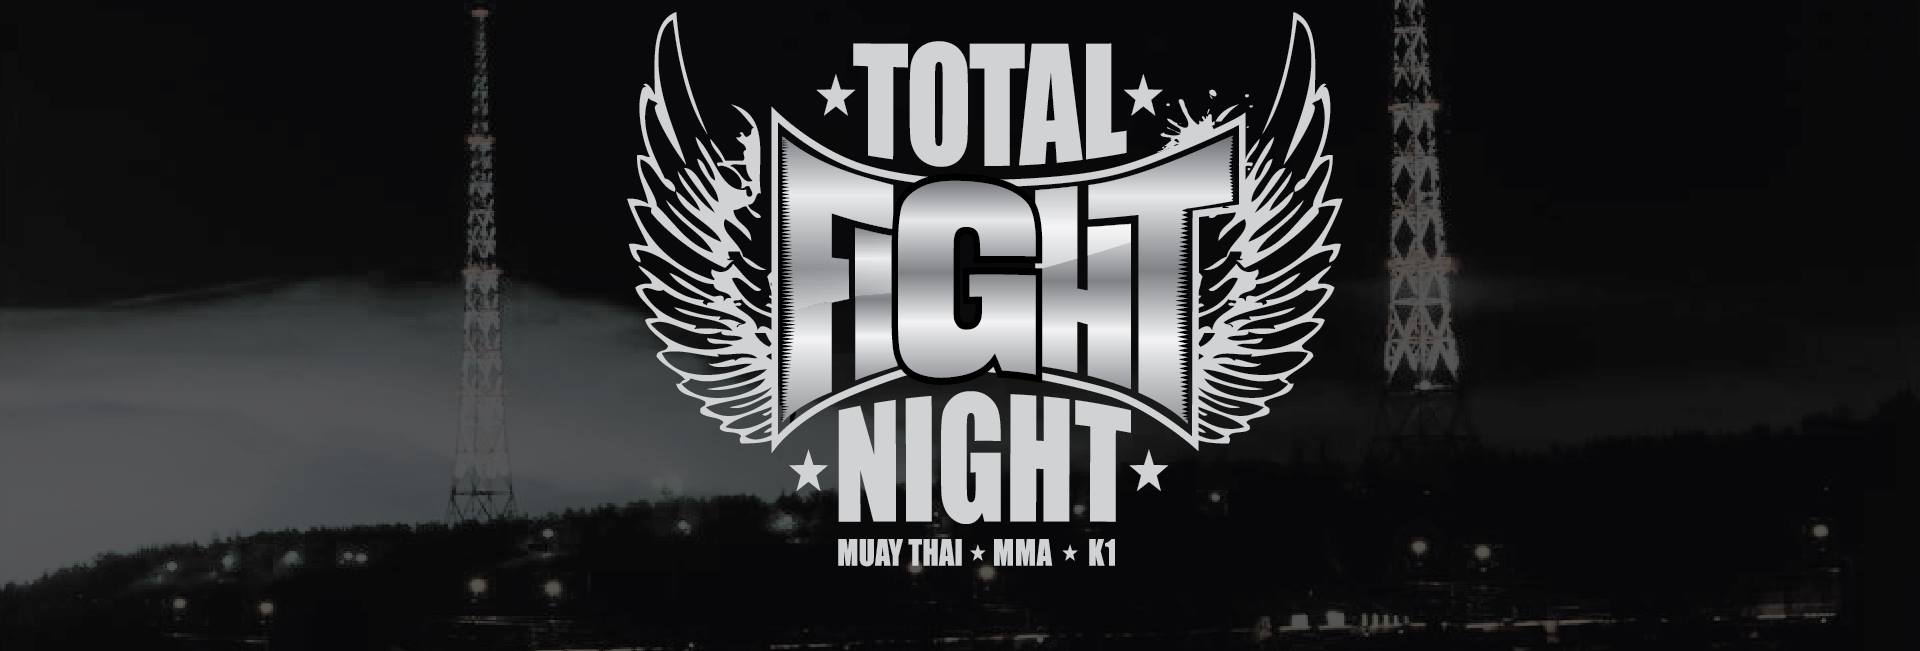 Total Fight Night 2